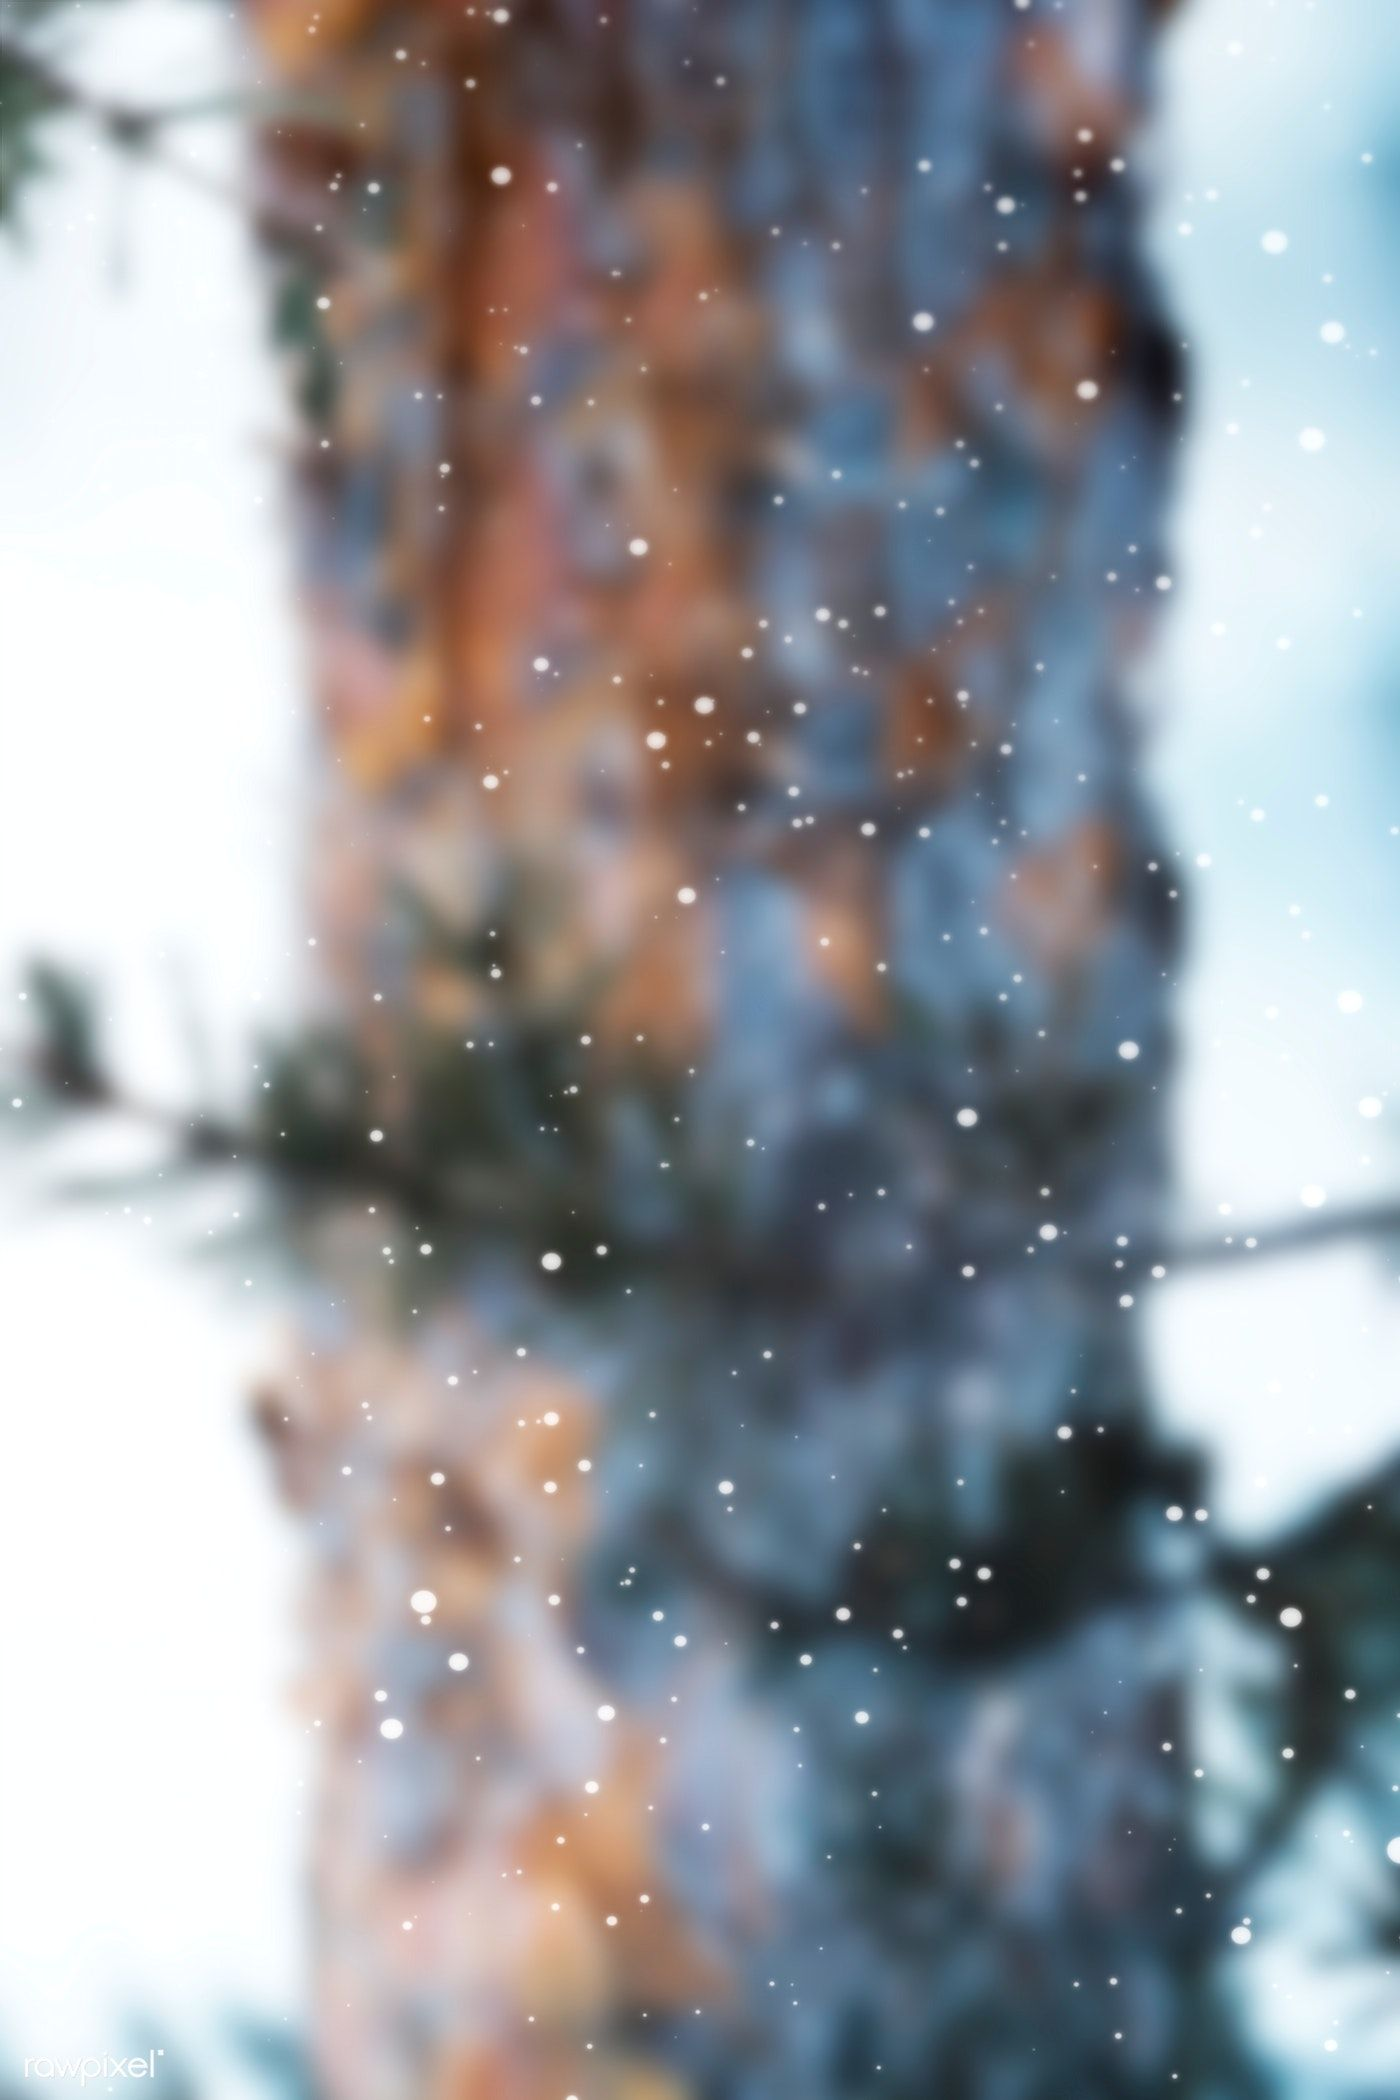 Download premium image of Pine branches in a snowy day